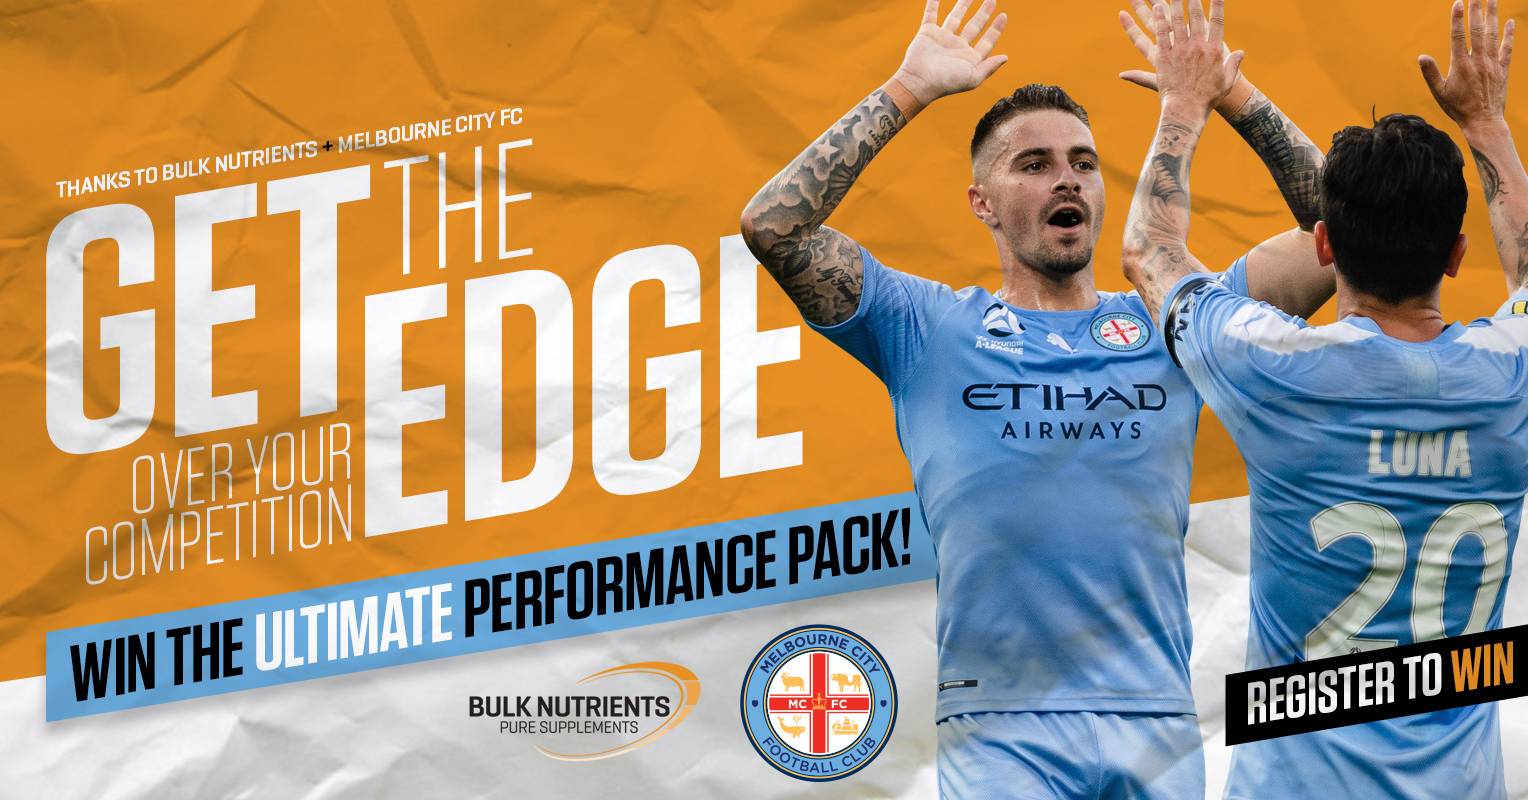 Thanks To Culk Nutrients + Melbourne City FC - Get the Edge Over your Competition. With the Ultimate Performance Pack!